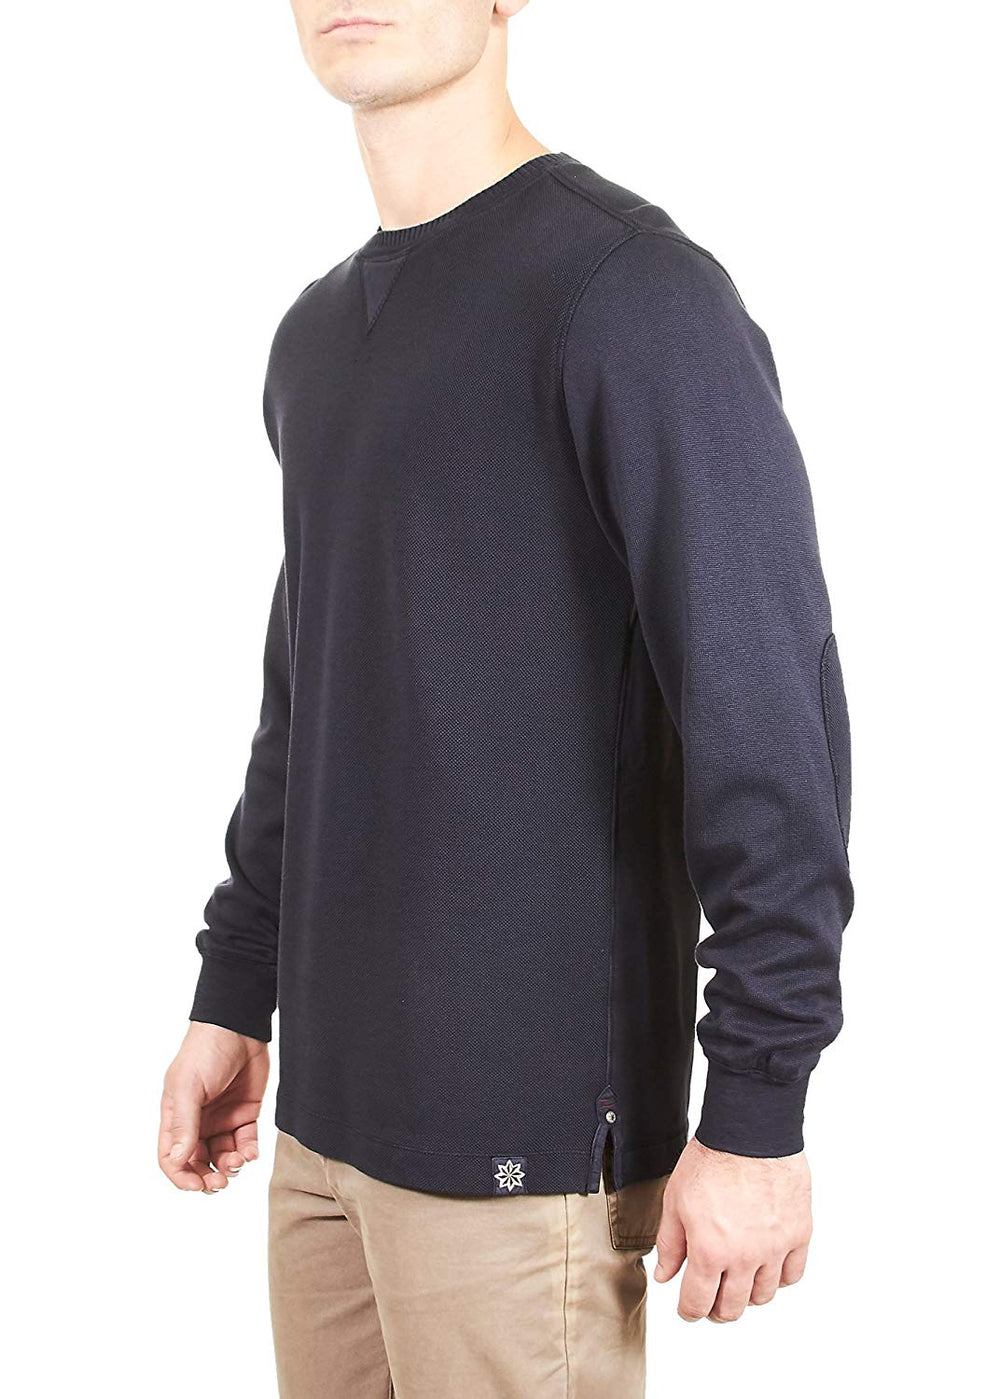 Thaddeus MARK Mens LS Mixed Media Crew Neck